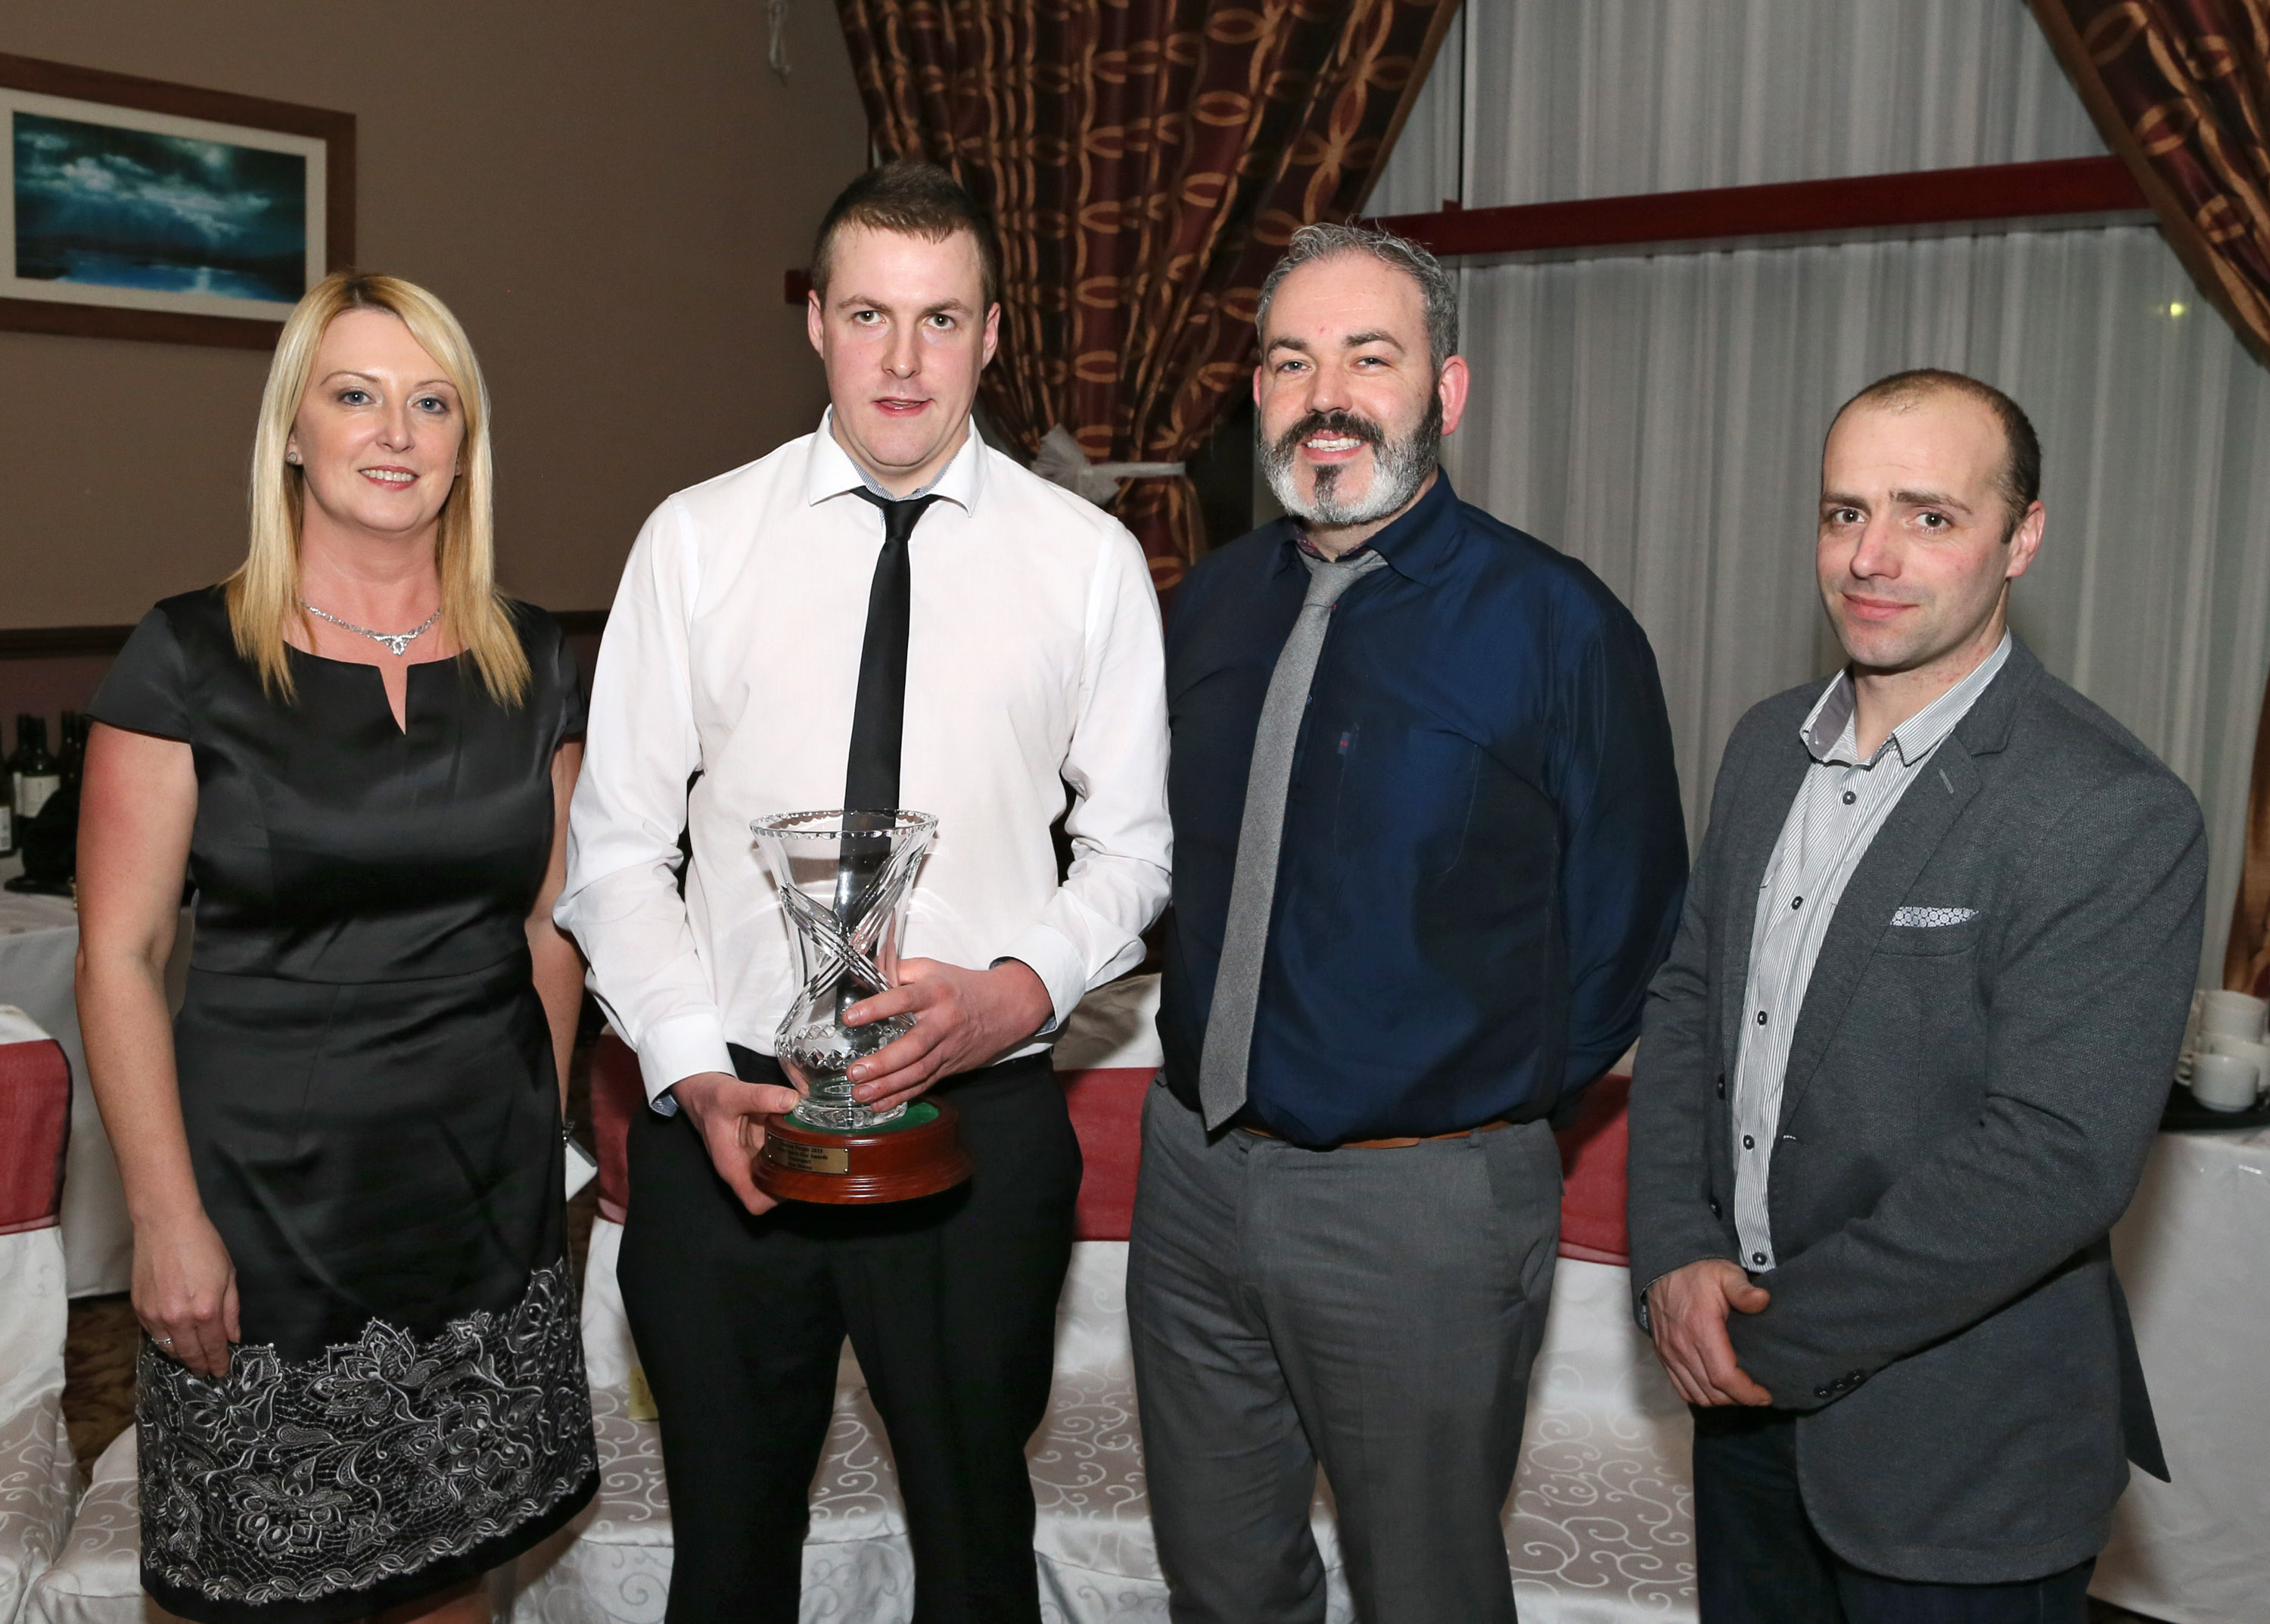 Alan Moran, Foxford (Motor Sport Award Winner) pictured with Mayo and District Motor Sport Club officers,  Kathleen Kennedy, sec; Andy Walsh PRO and Matthew Murphy, Chairman, at Western People 46th Annual Mayo Sports Stars Awards in Association with Ballina Beverages Gala Presentation Banquet in Hotel Ballina 19 Feb 2016. Photo: © Michael Donnelly